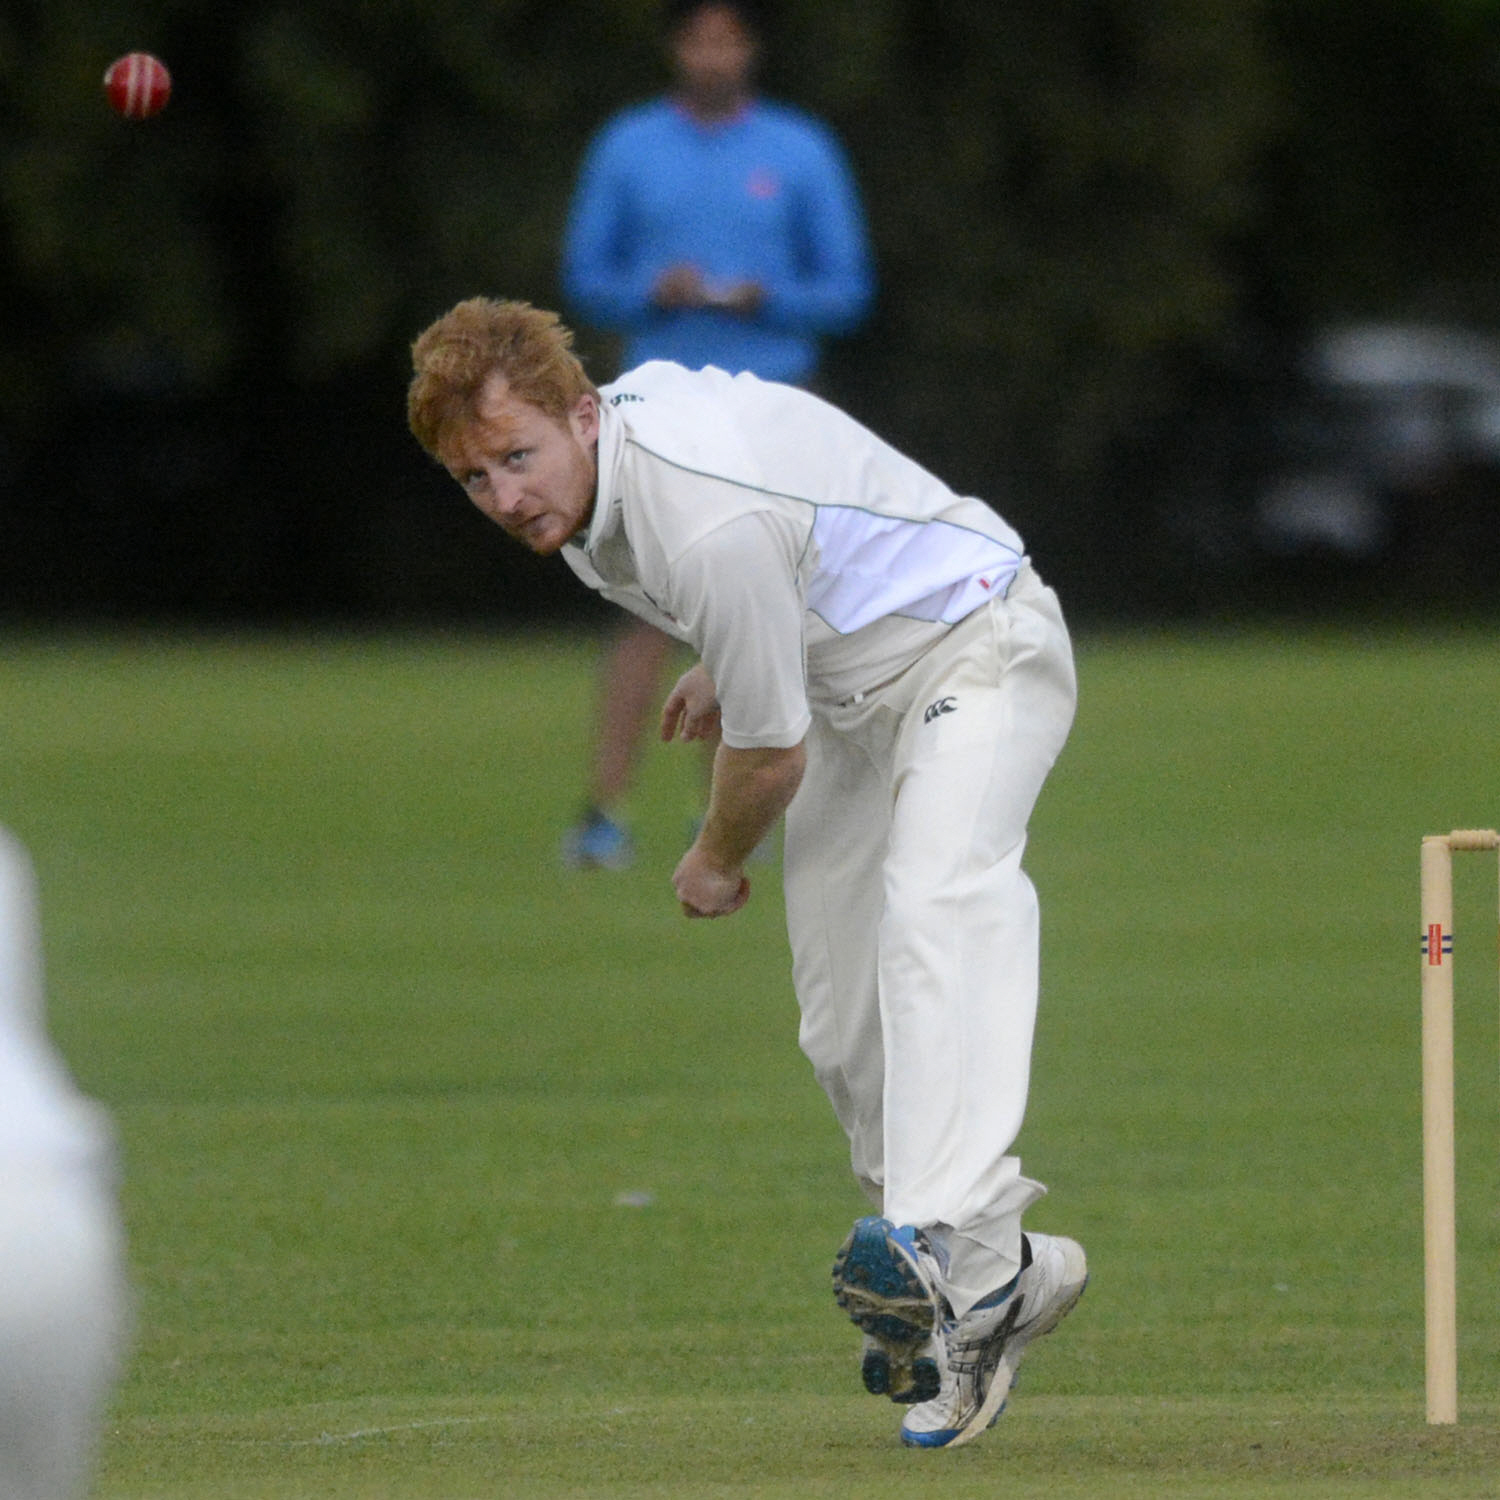 Thames Valley League Windsor Cricket Club Named As Title Contenders After Fifth Win